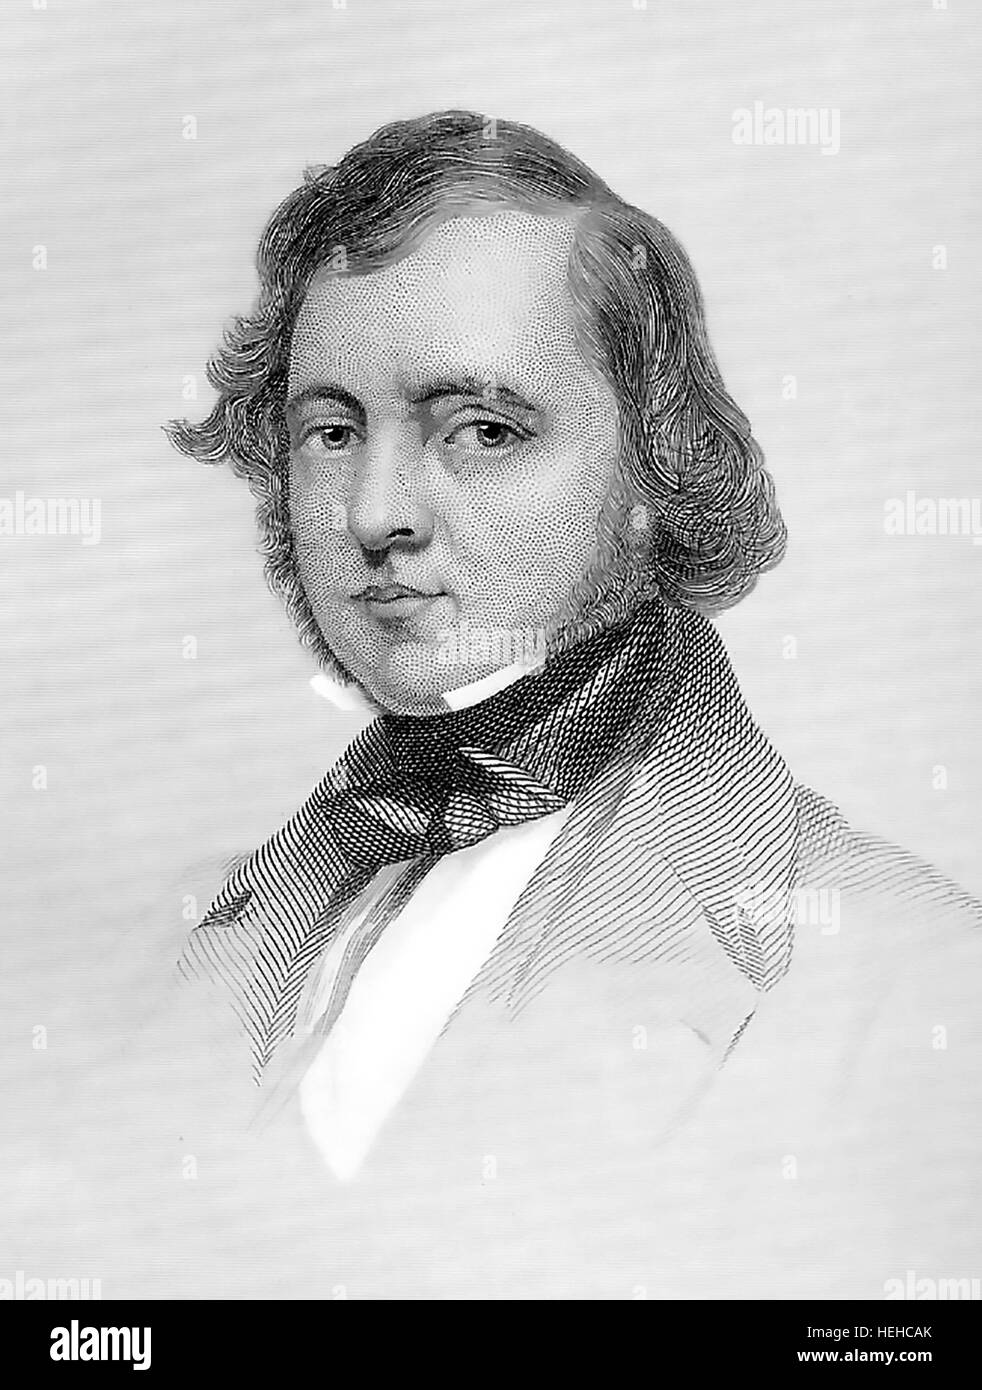 SAMUEL LOVER (1797-1868) Irish author and composer about 1858 - Stock Image